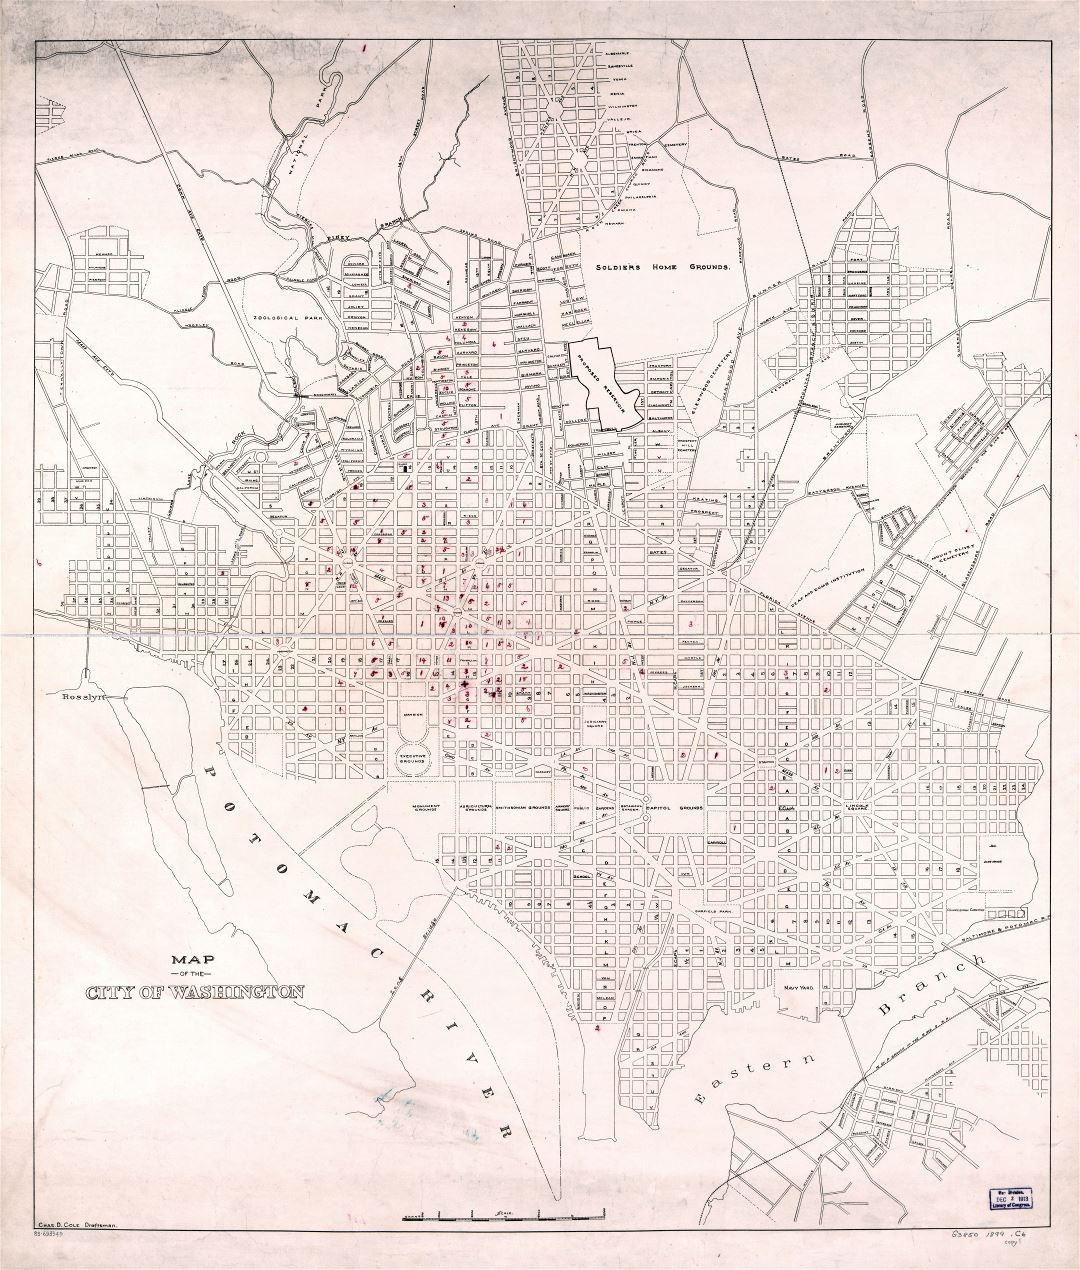 Large scale detailed old map of the city of Washington D.C. - 1899